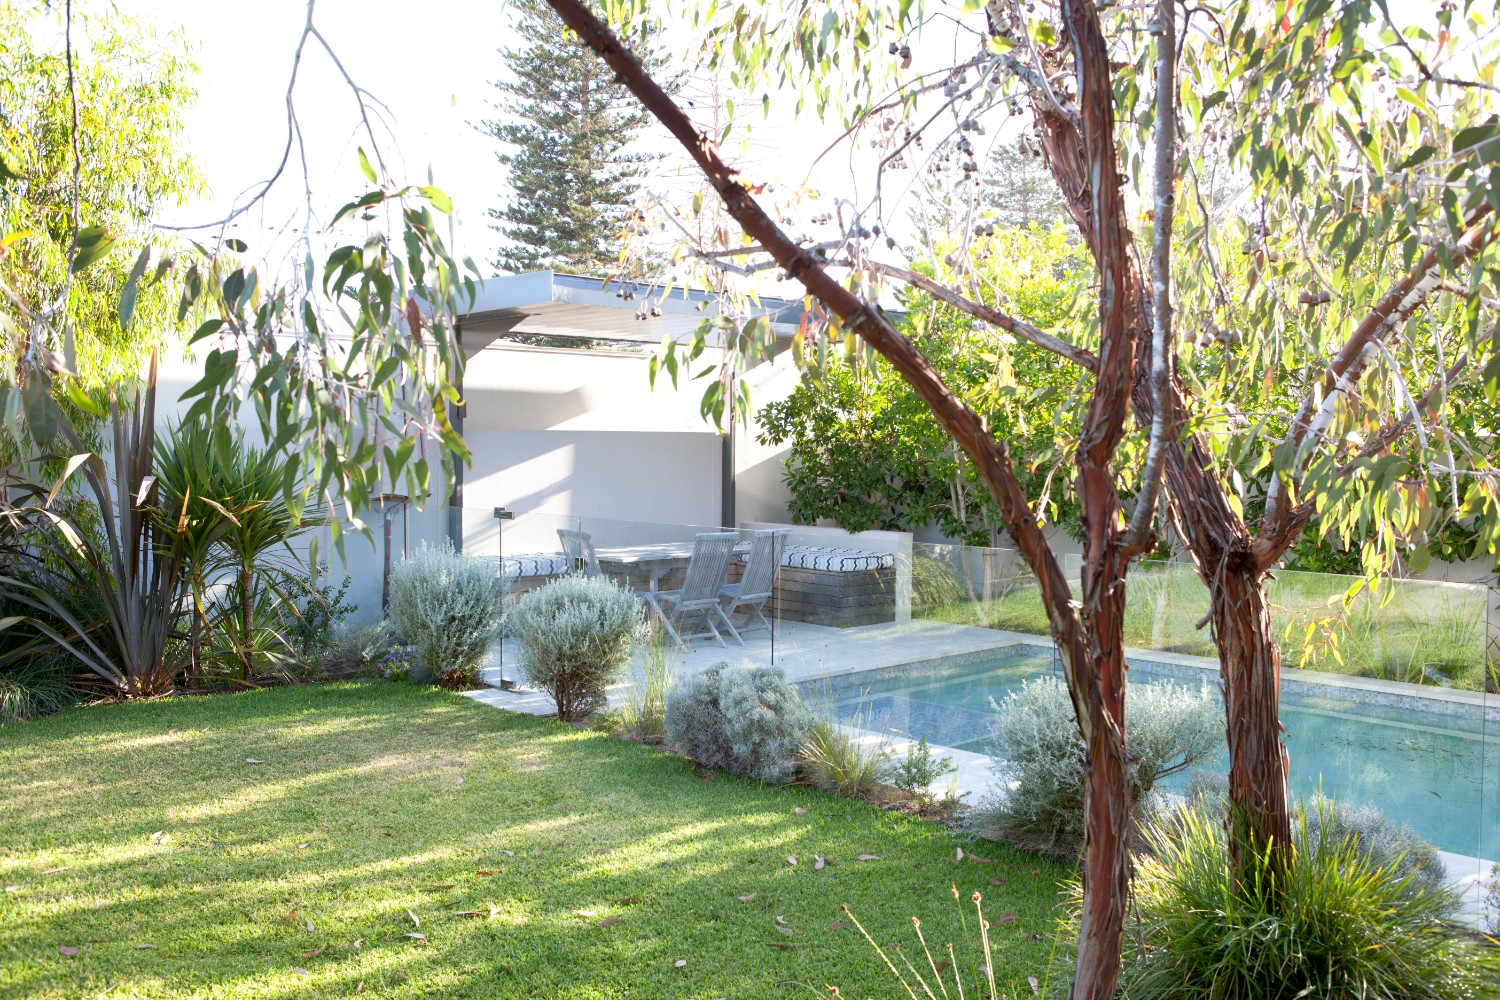 beautiful pool surrounded by greenery from trees, plants and grass